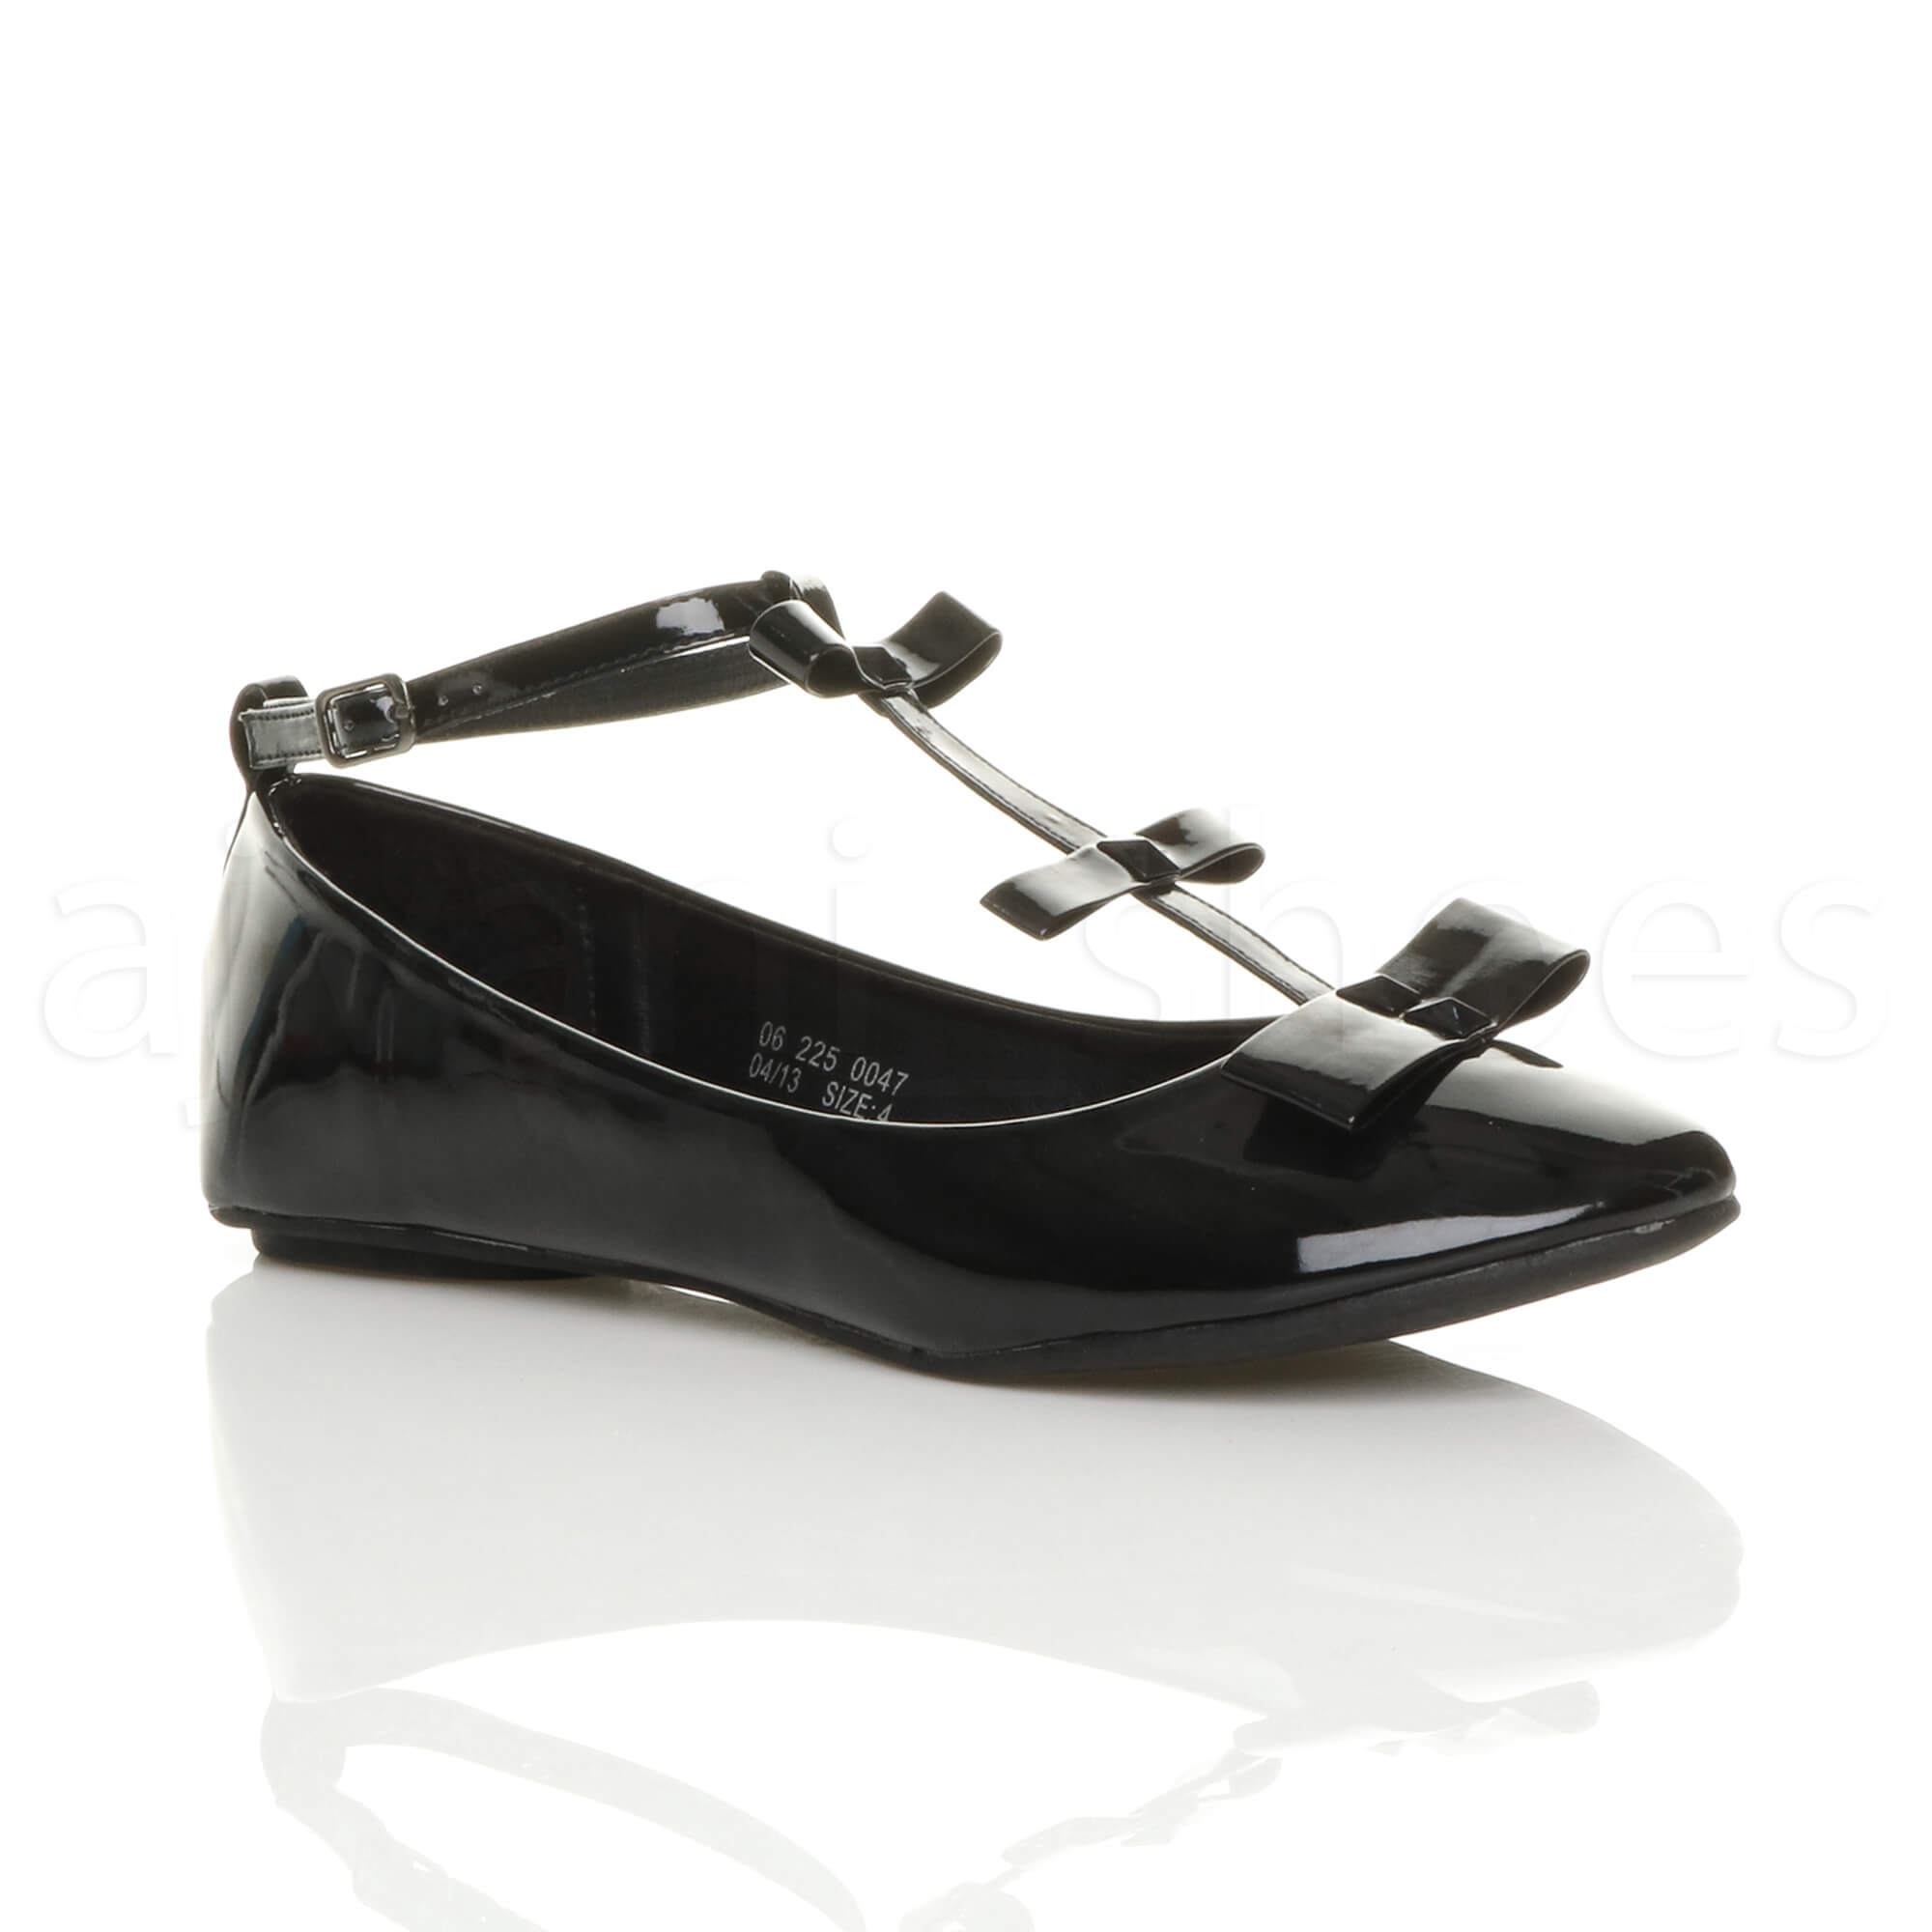 WOMENS LADIES FLAT ANKLE STRAP T-BAR BOW SMART WORK BALLERINA DOLLY SHOES  SIZE 4f35606e62